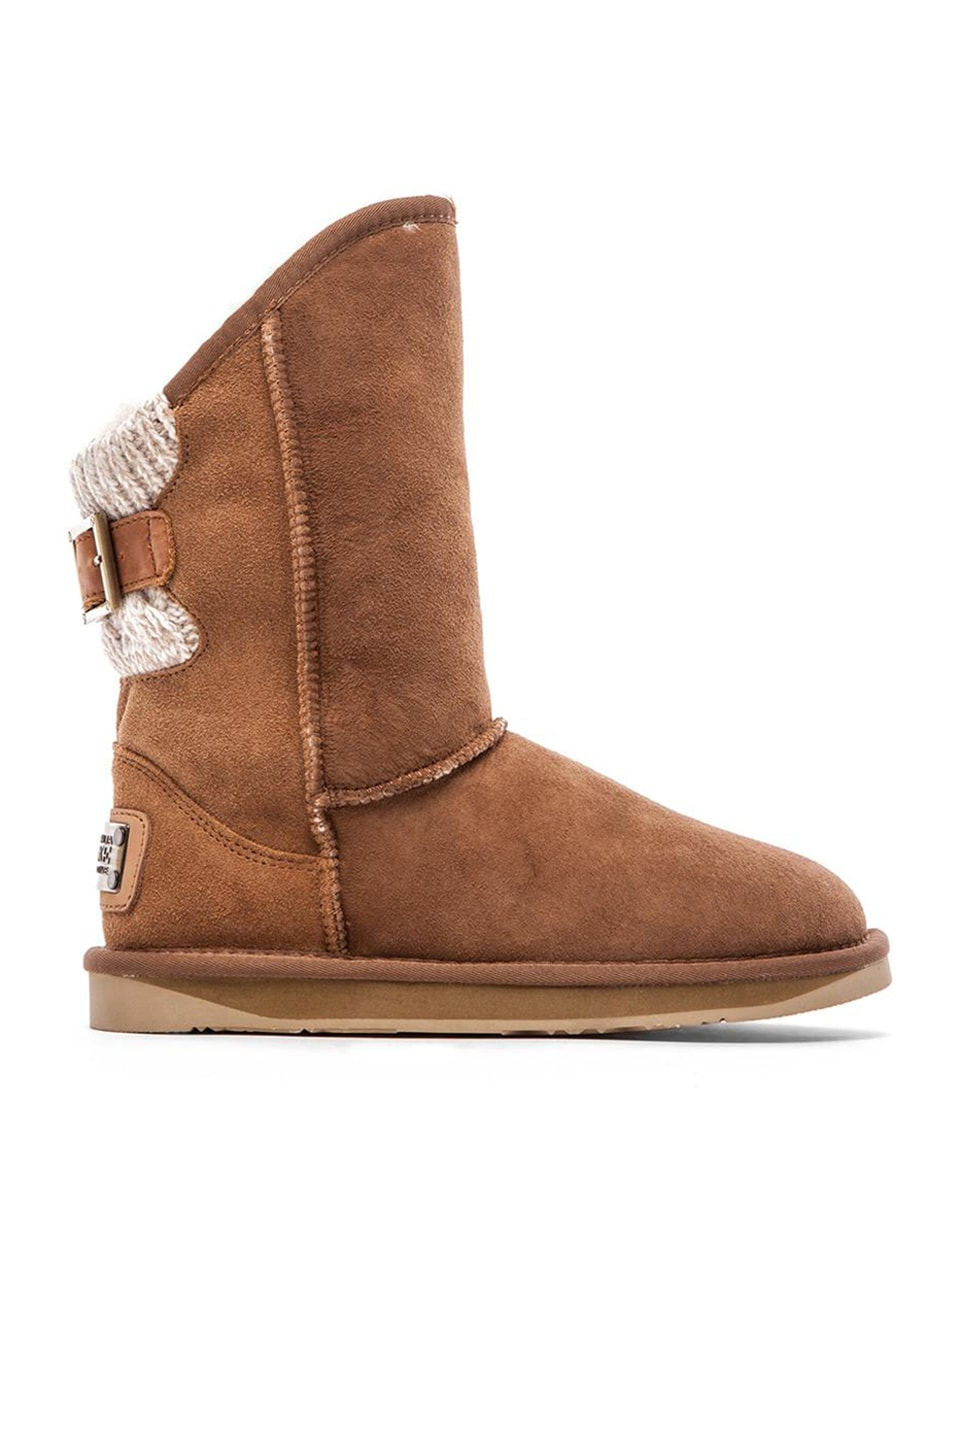 Australia Luxe Collective Spartan Knit Short Boot in Chestnut